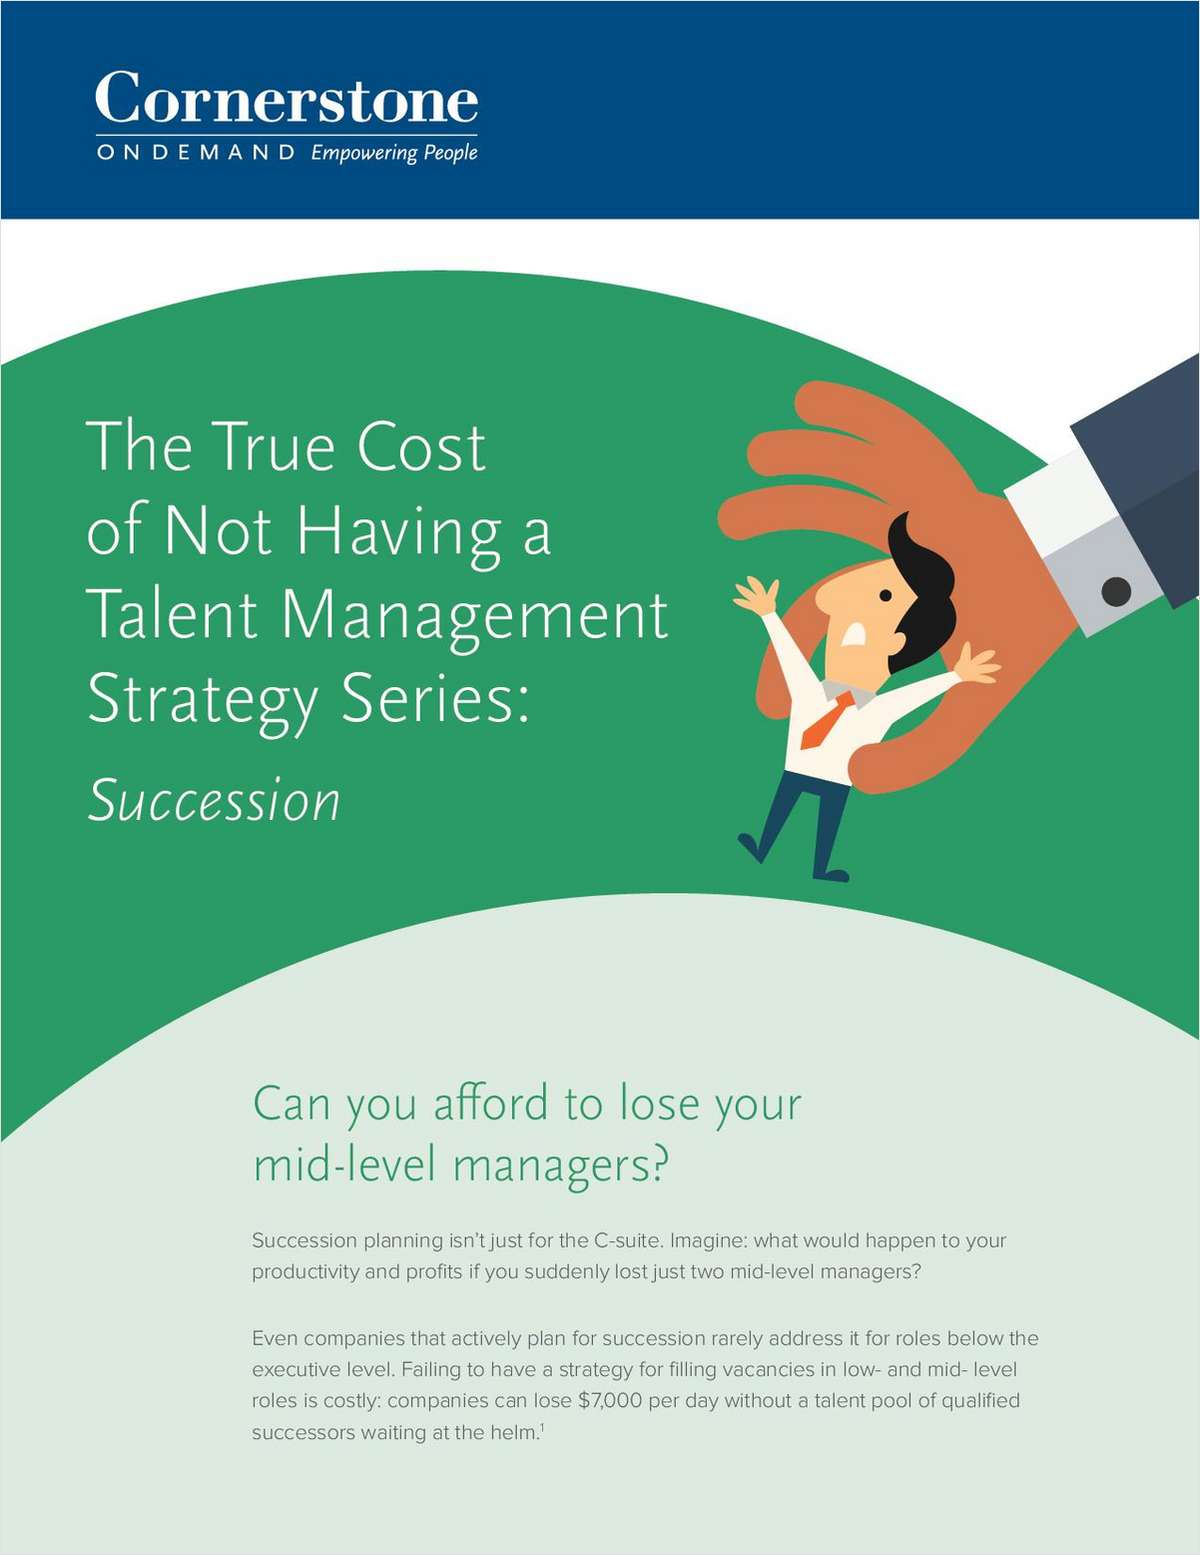 The True Cost of Not Having a Talent Management Strategy Series: Succession